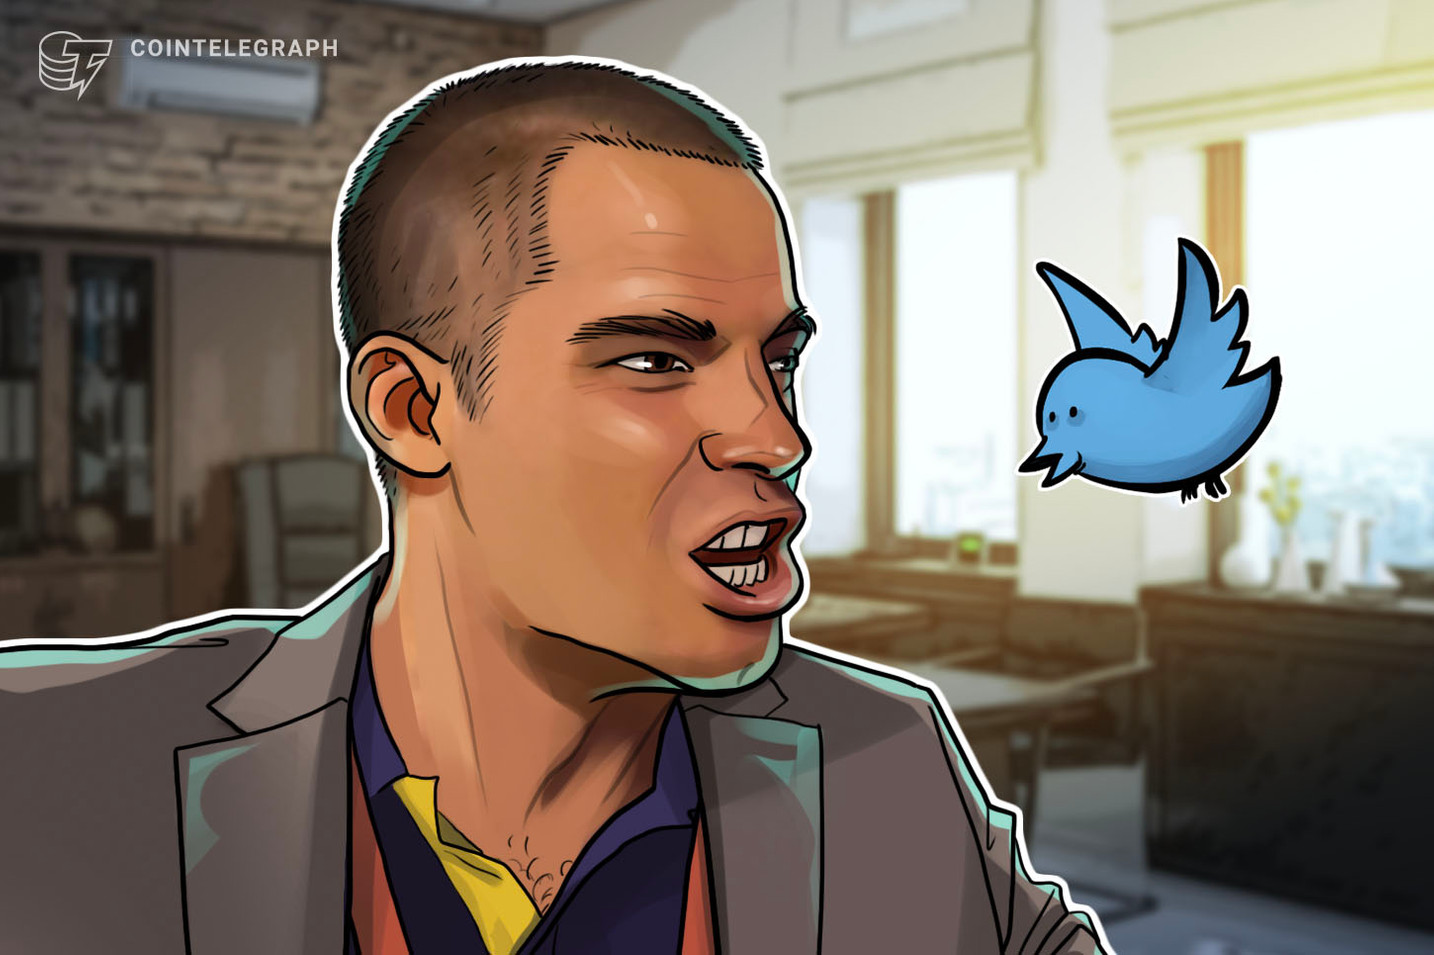 Roger Ver Says Twitter Blocking His Tweets About BCH